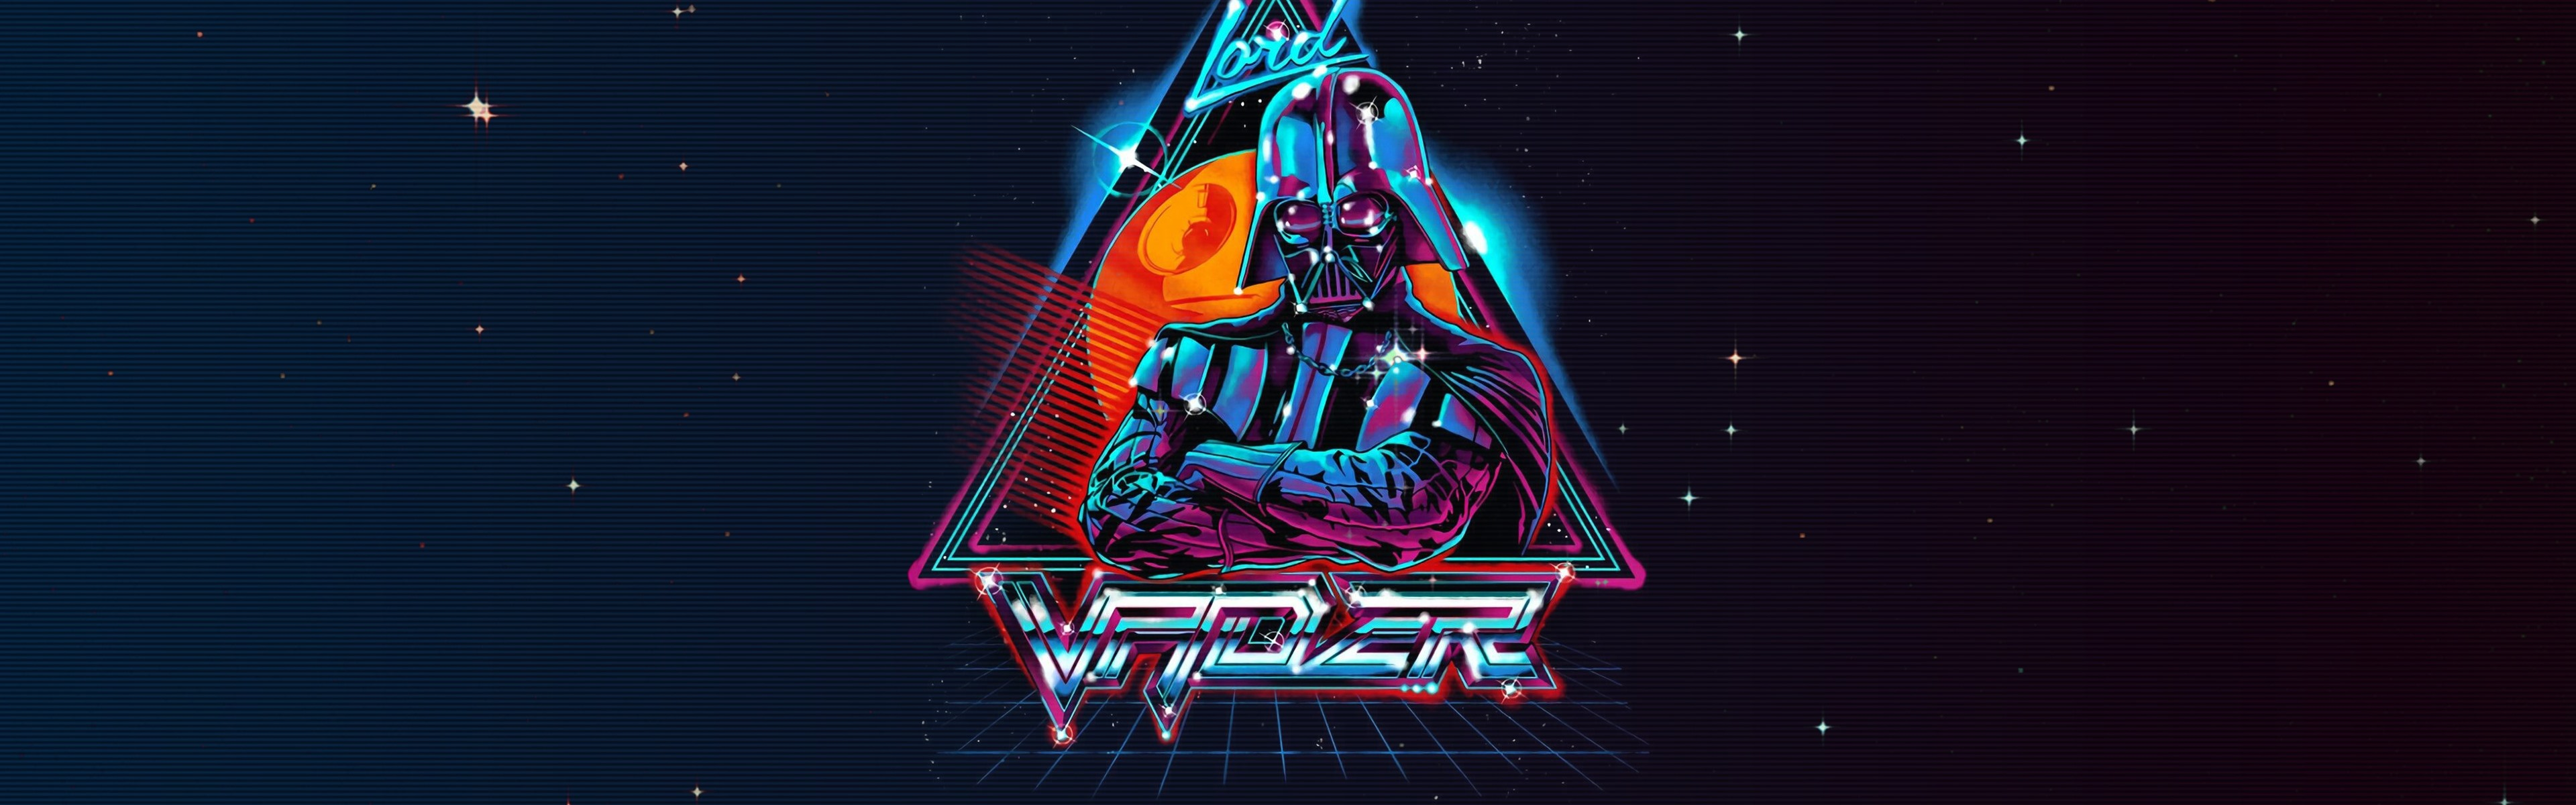 Wallpaper Star Wars Darth Vader Art Picture Black Background 3840x1200 Multi Monitor Panorama Picture Image